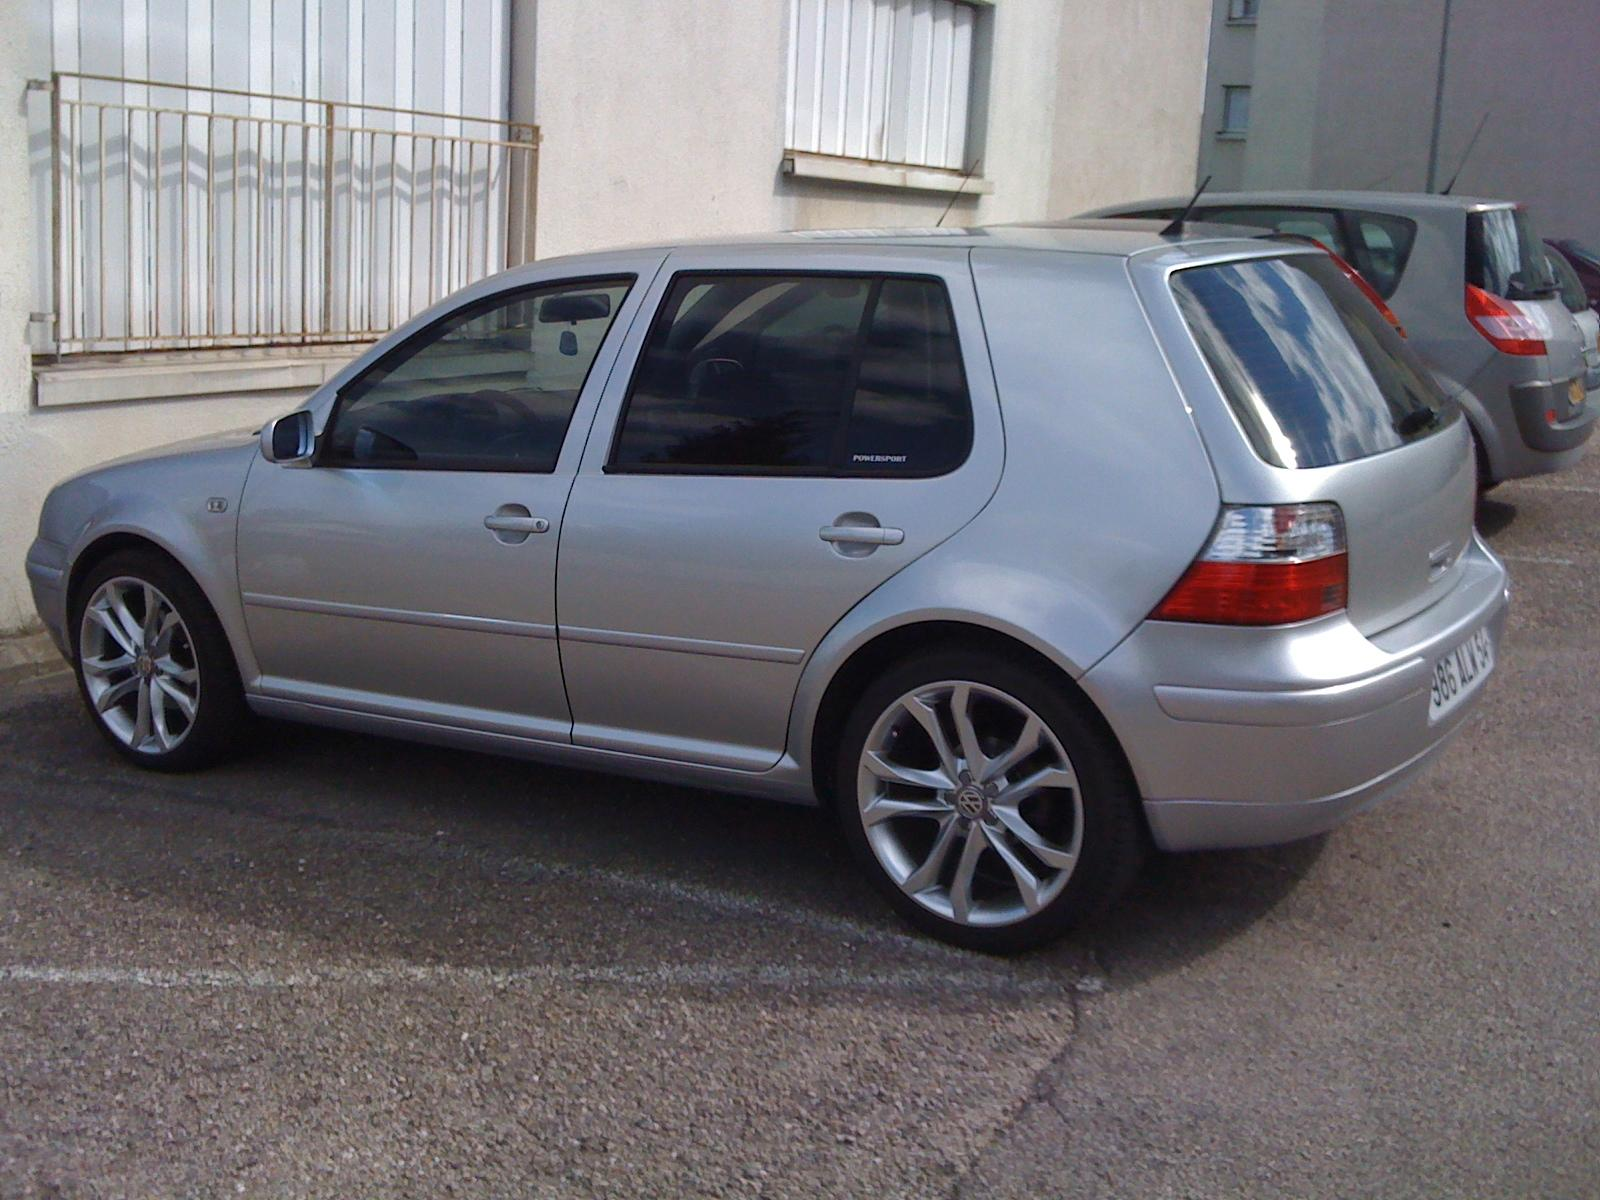 golf 4 tdi 100 - thesuplice54